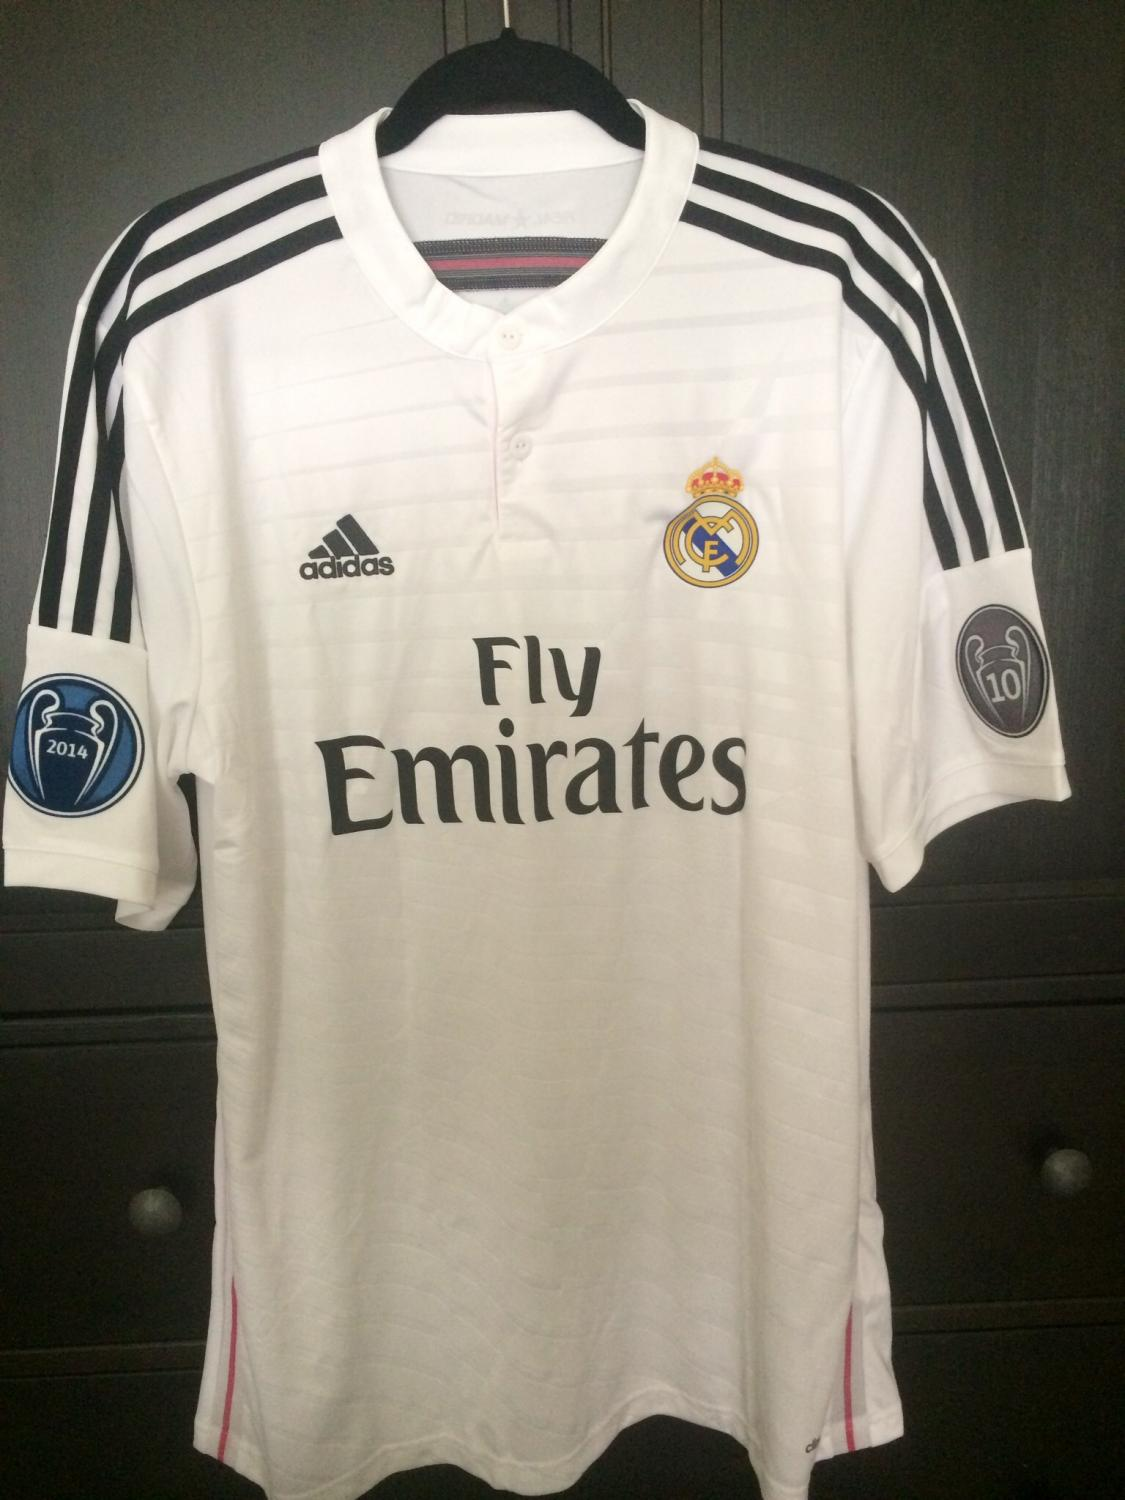 Real Madrid Home football shirt 2014 - 2015. Sponsored by Emirates